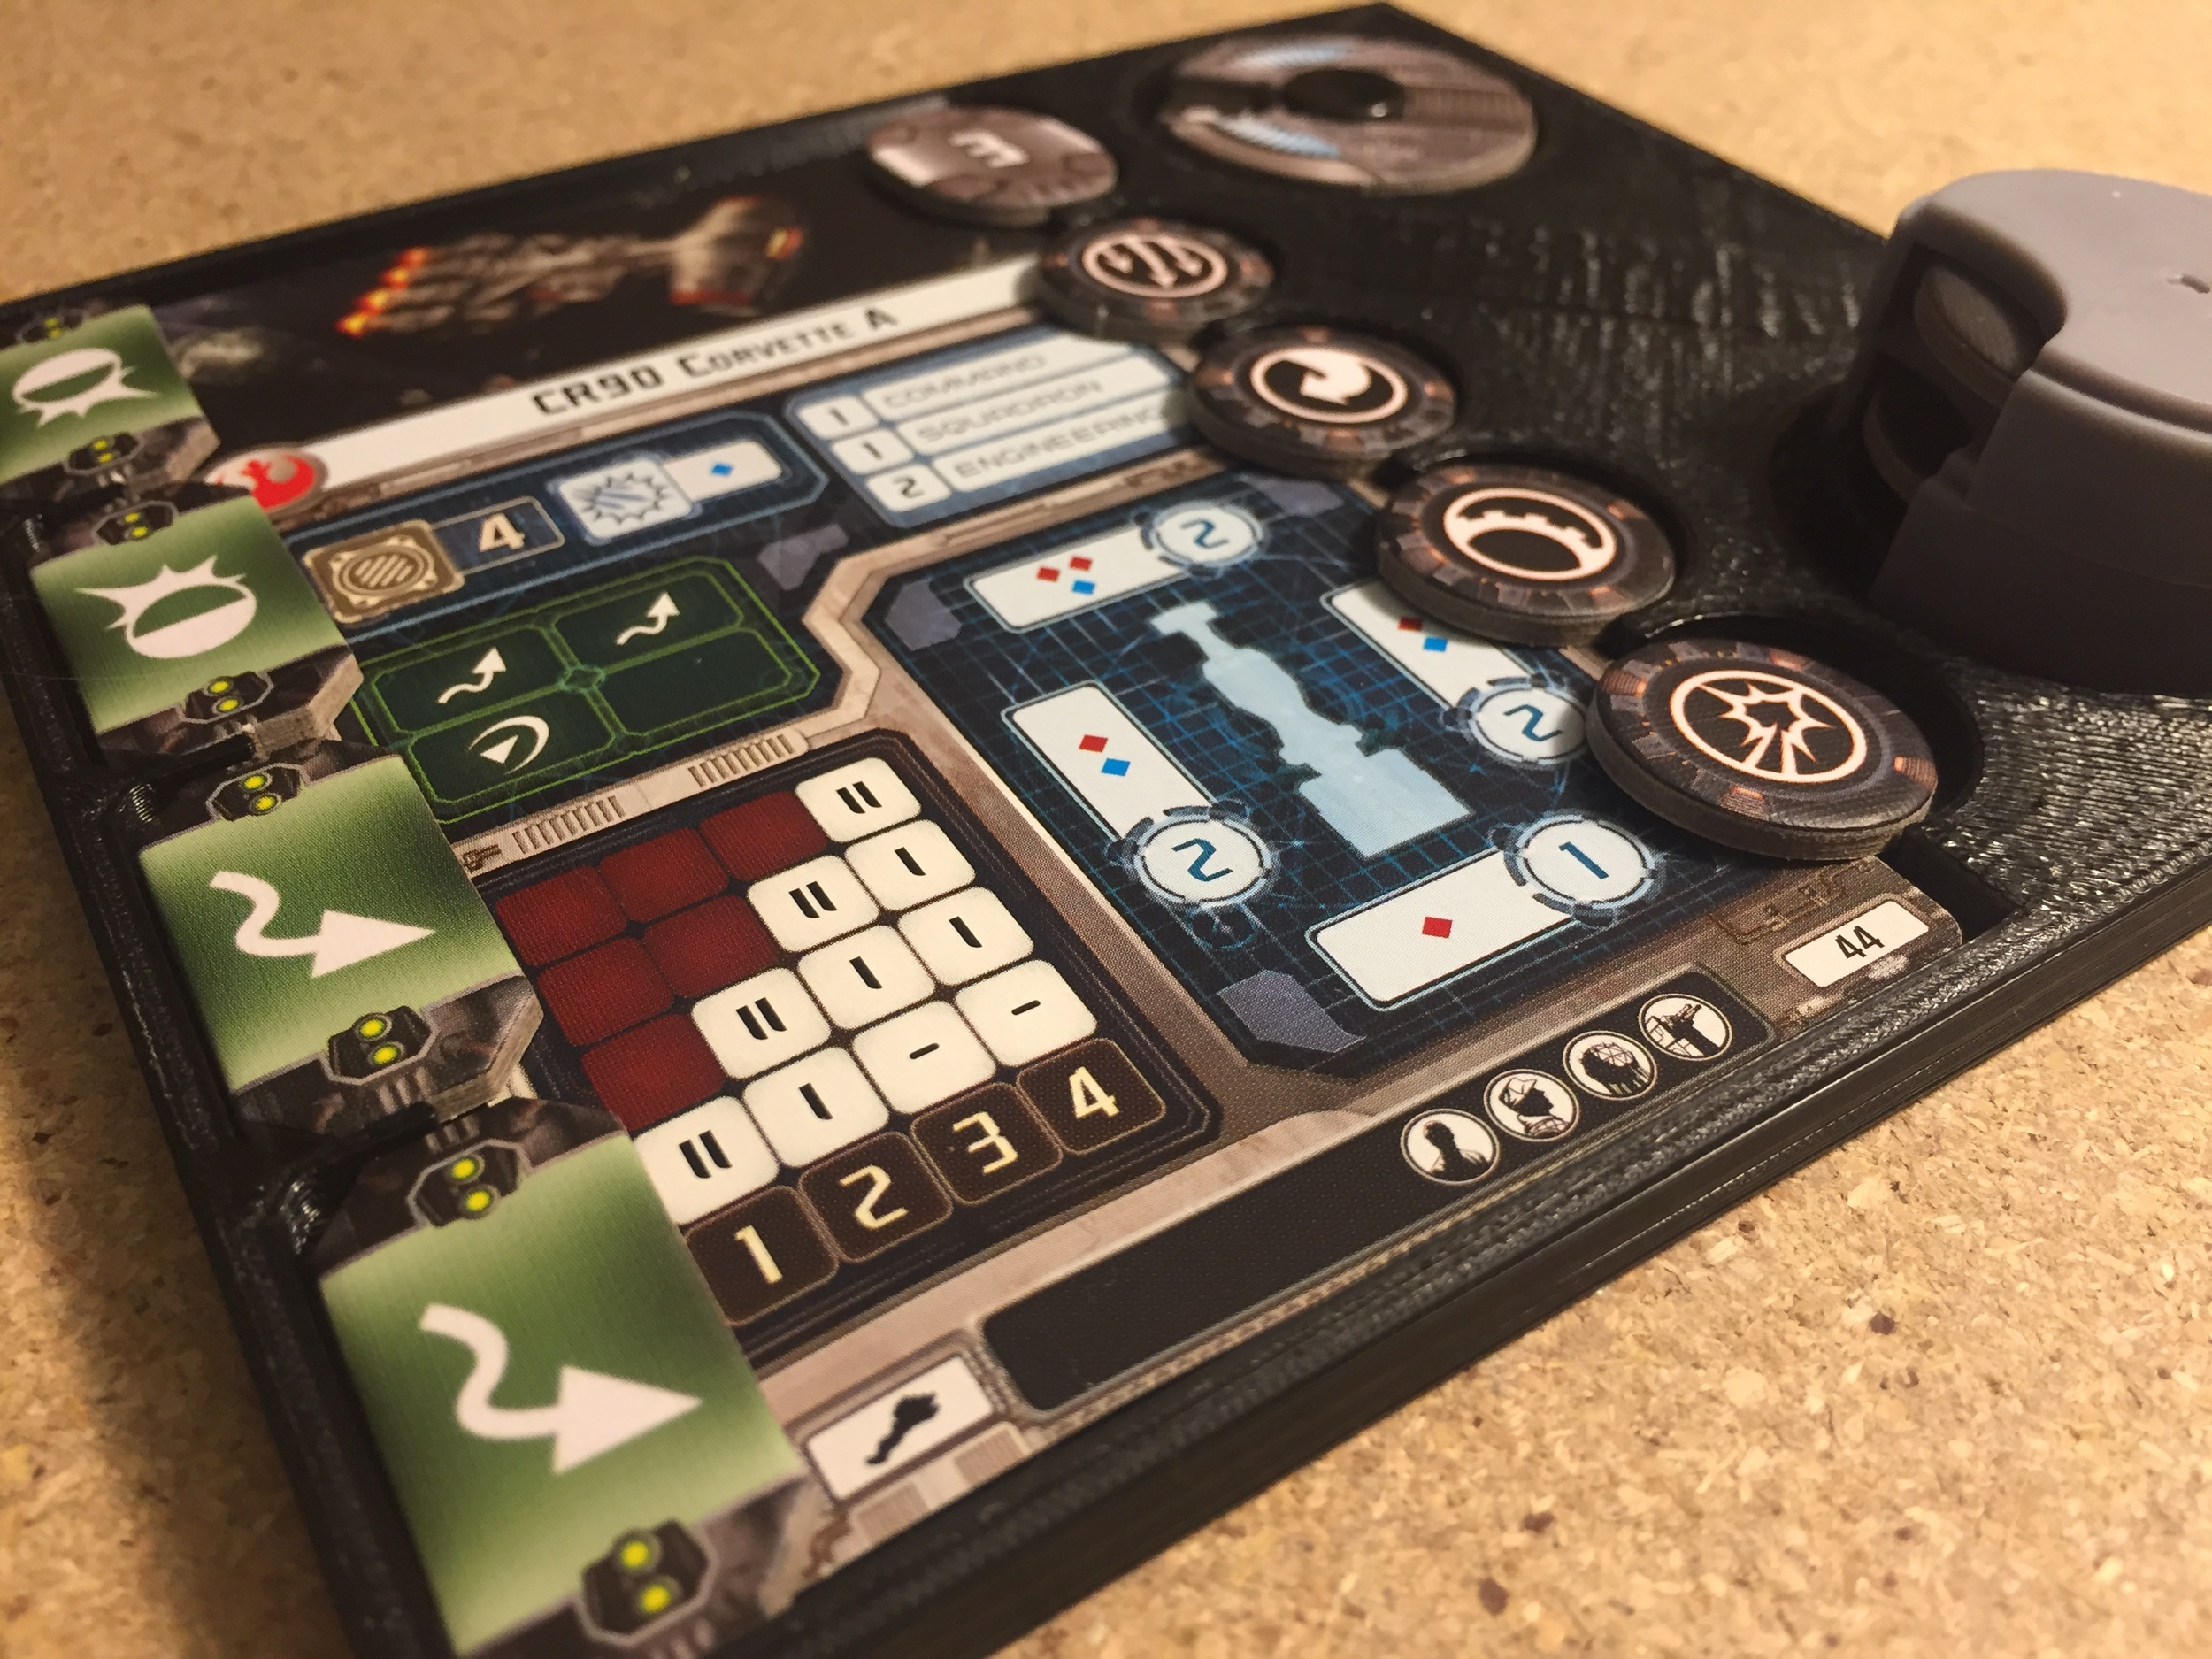 This is an early prototype of a ship card and token tray for Star Wars: Armada miniatures strategy game. I am exploring manufacturing options based on the interest of people who have seen it.